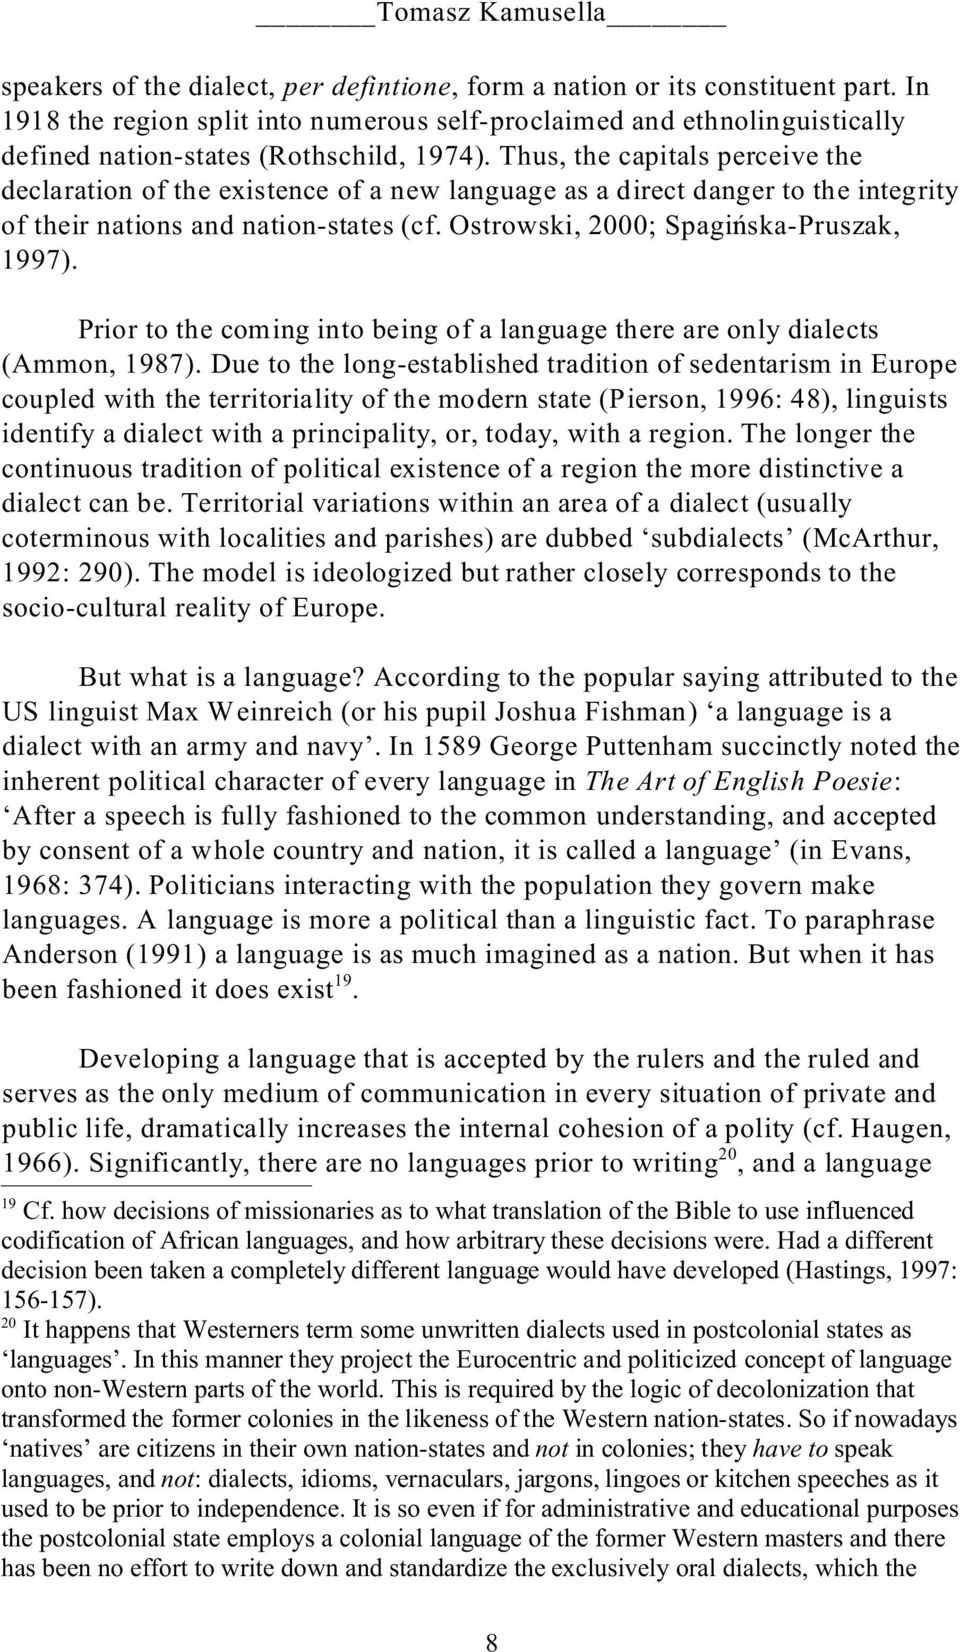 Prior to the coming into being of a language there are only dialects (Ammon, 1987).